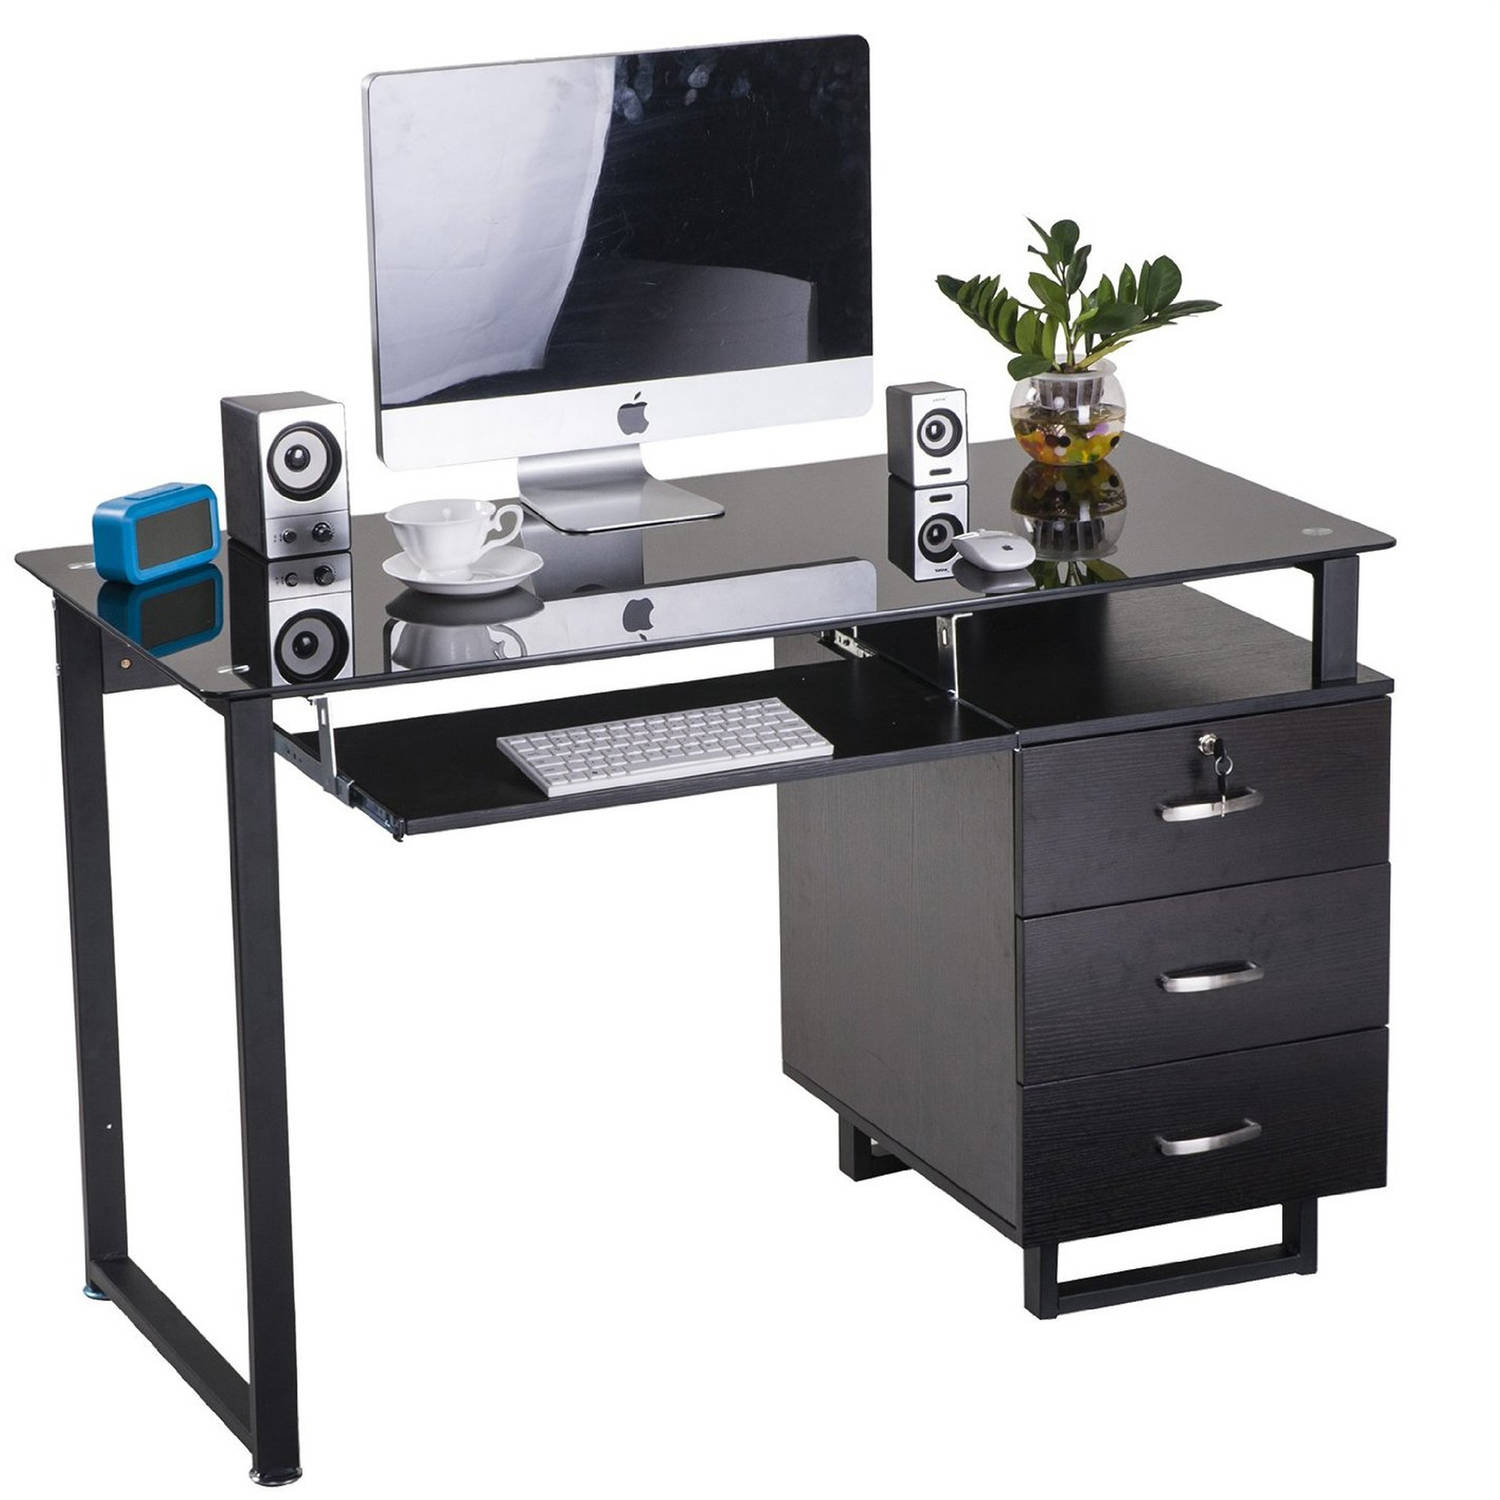 Merax Glass puter Desk fice Desk with Keyboard Tray and